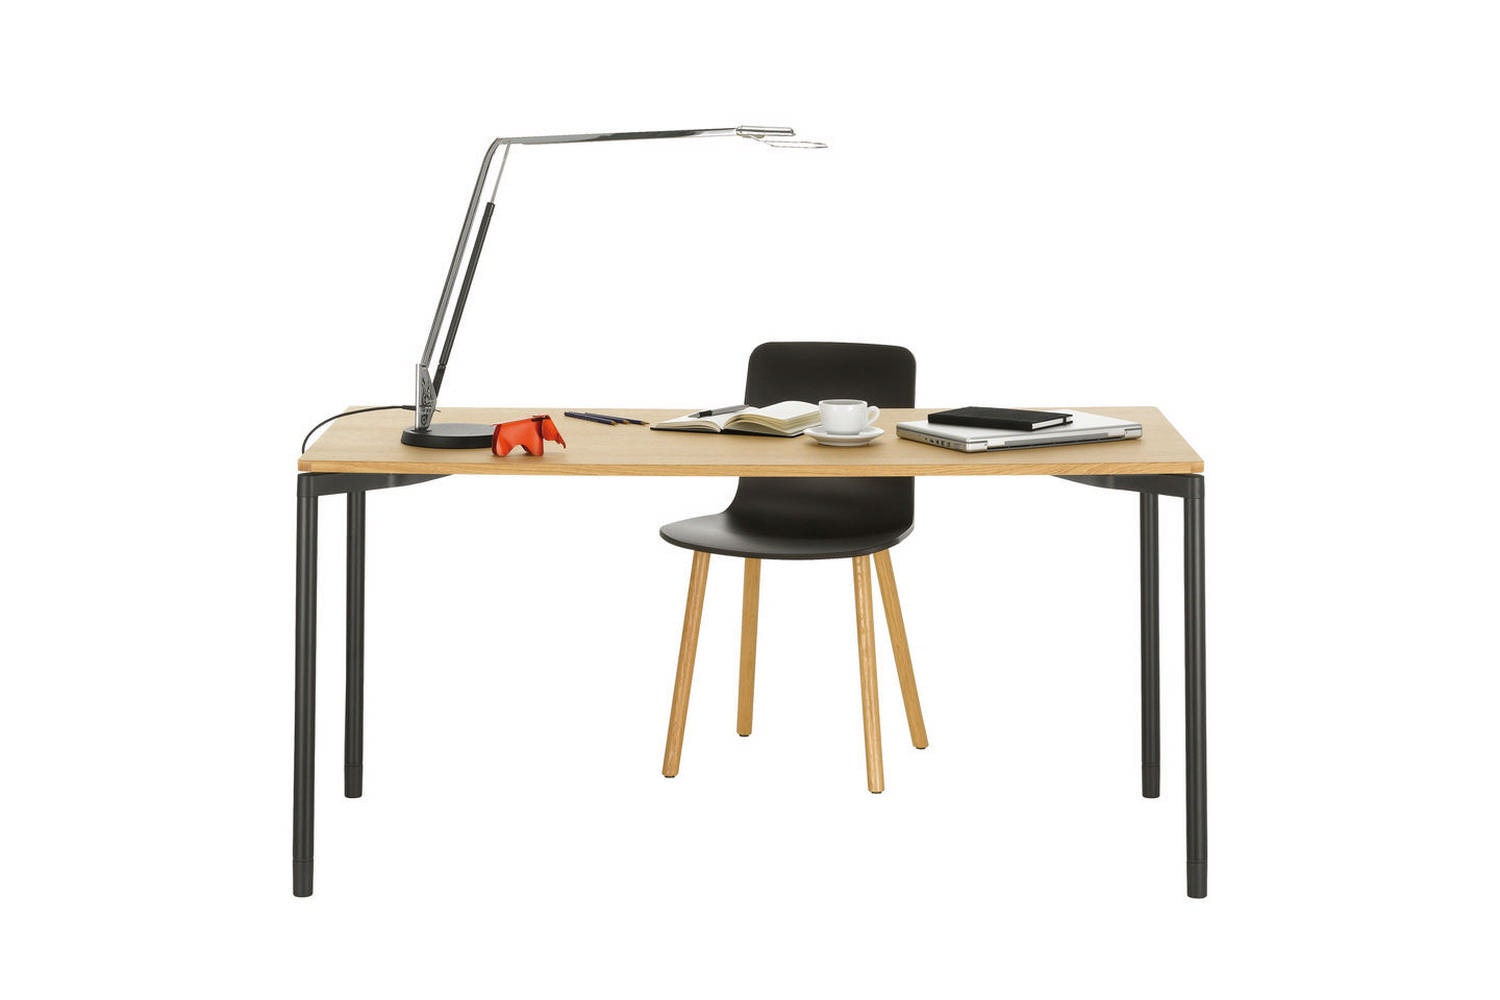 Map Table by Edward Barber & Jay Osgerby for Vitra